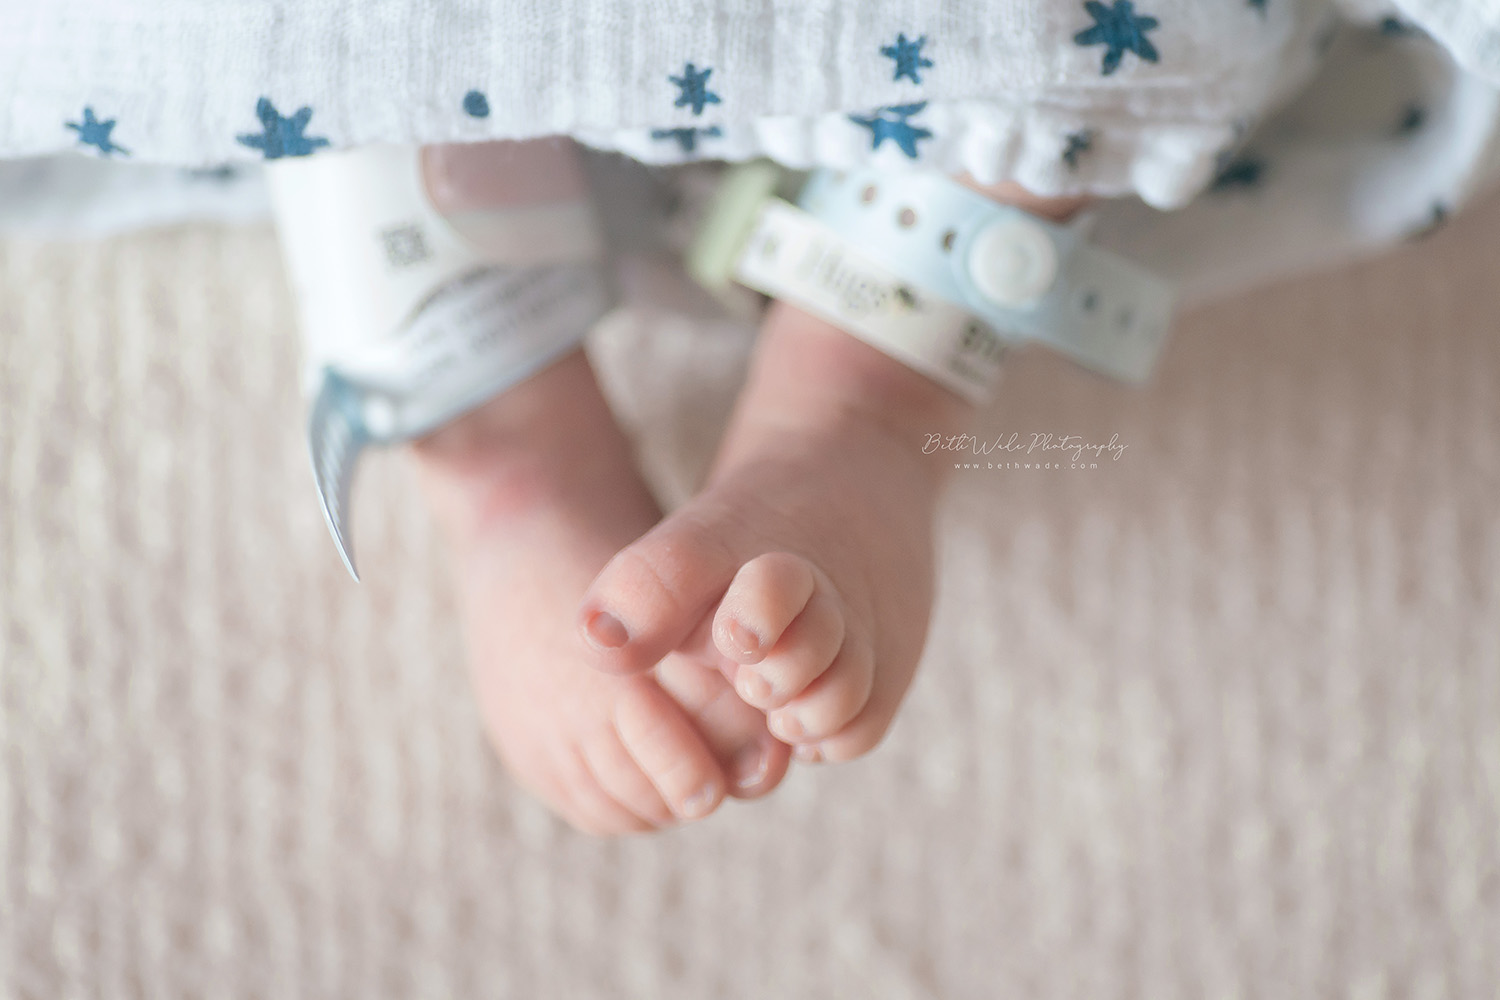 baby brother - 24 hours old video {charlotte newborn photographer}